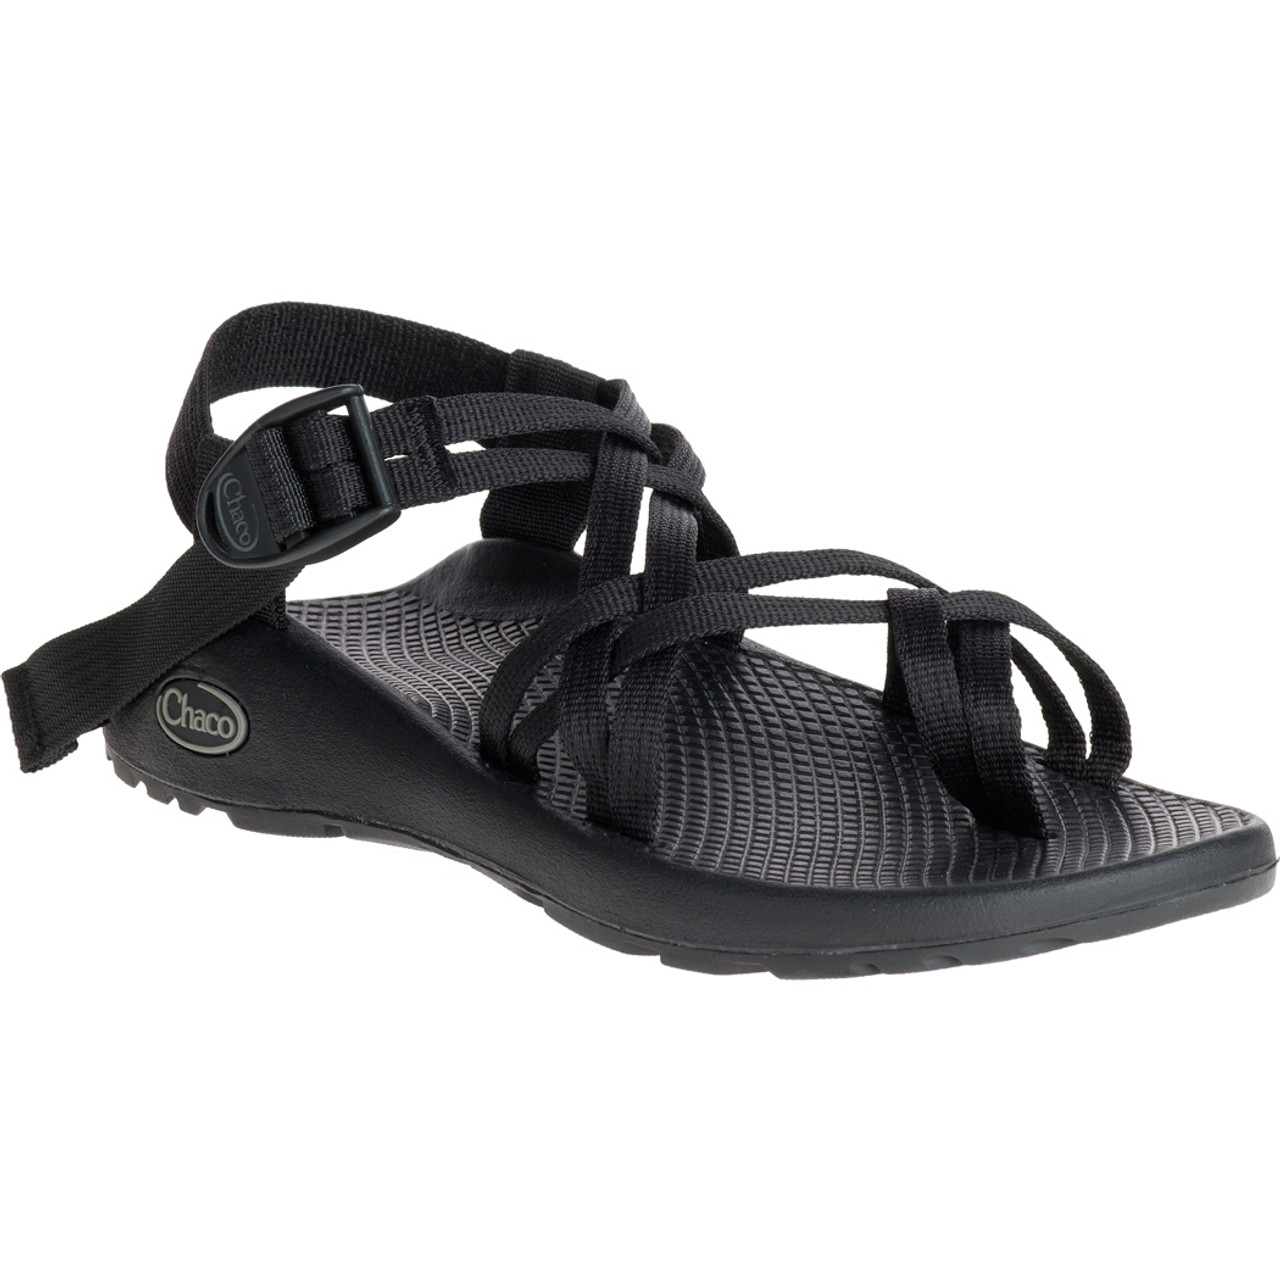 83fa1f4da88 Chacos Women s Sandals - ZX 2 Classic - Black - Surf and Dirt